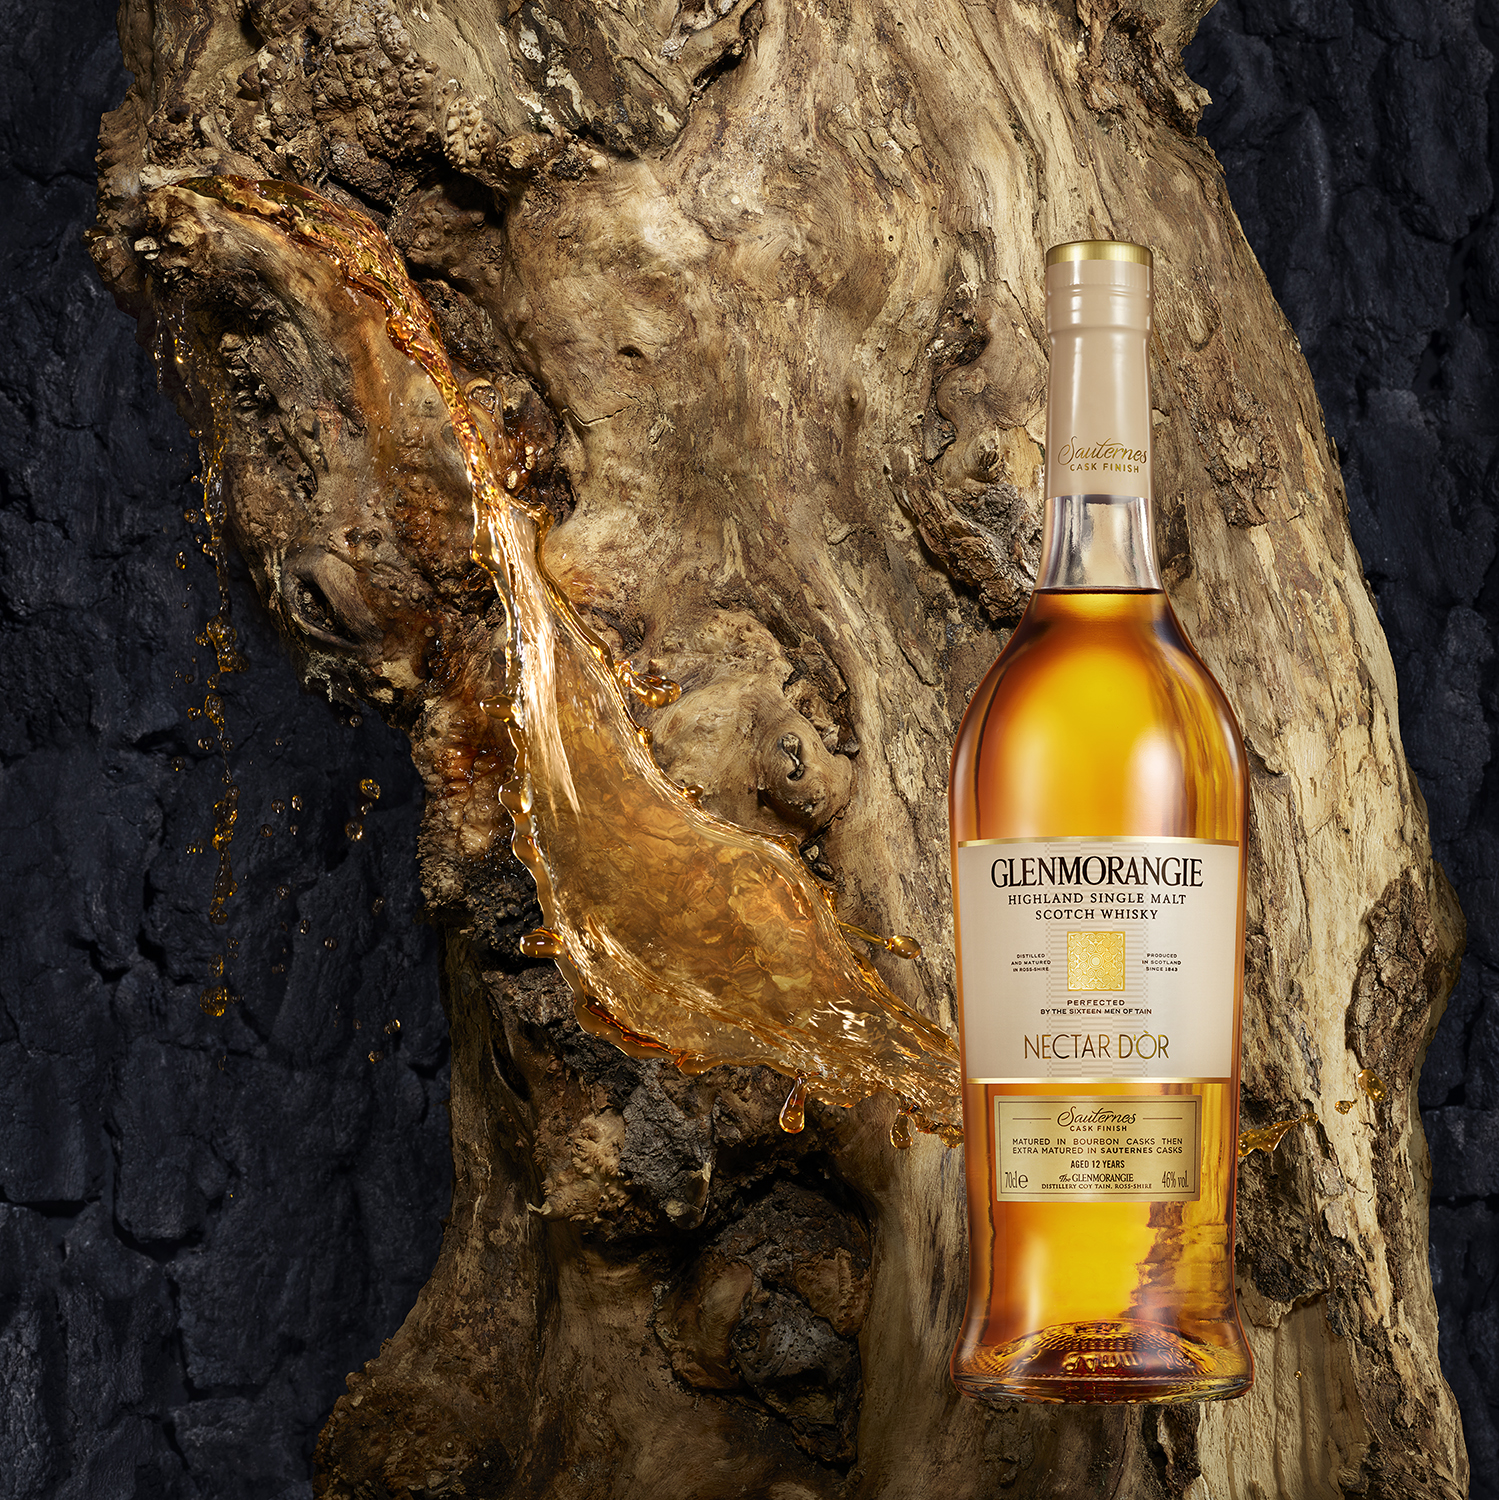 Glenmorangie_Bottle_H1500.jpg